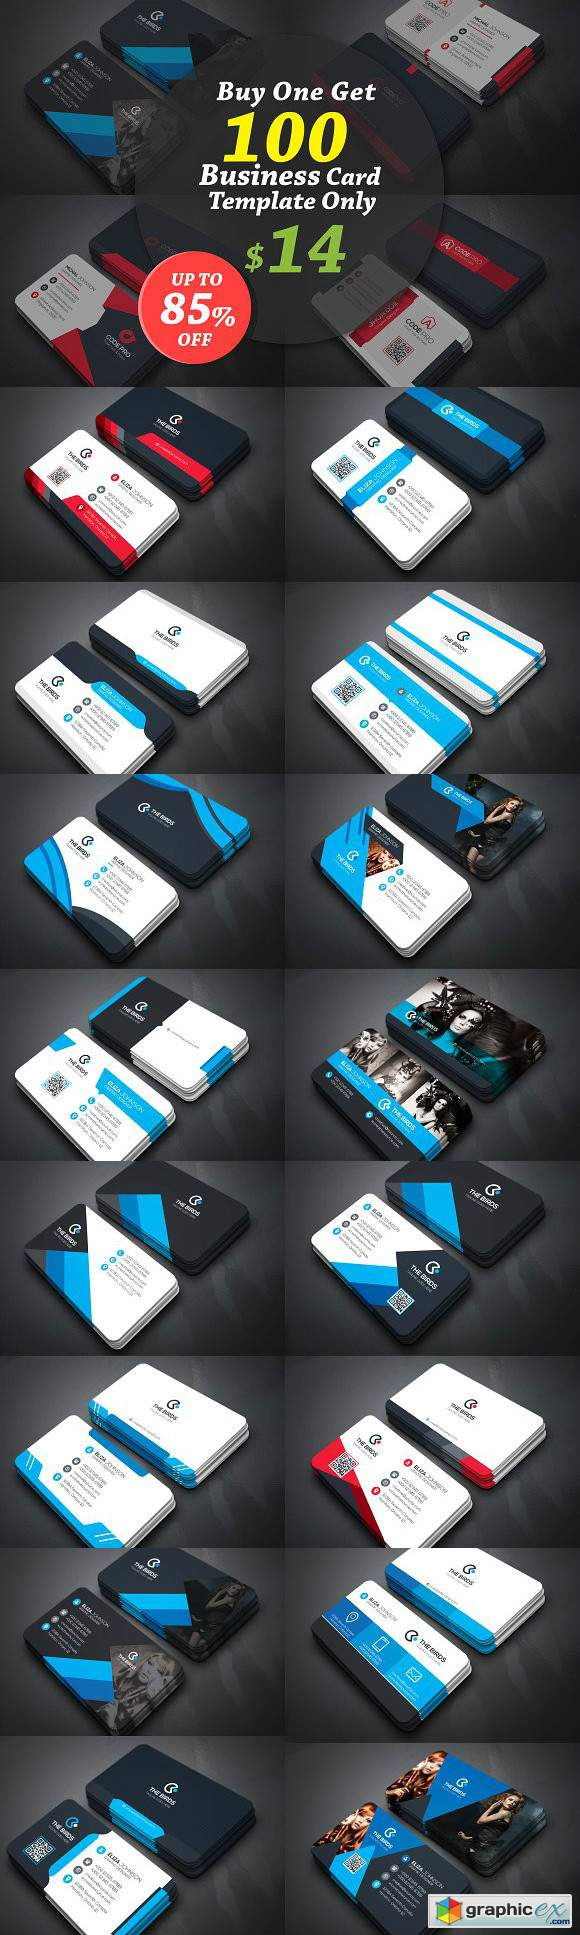 100 Business Cards Bundle 3243405